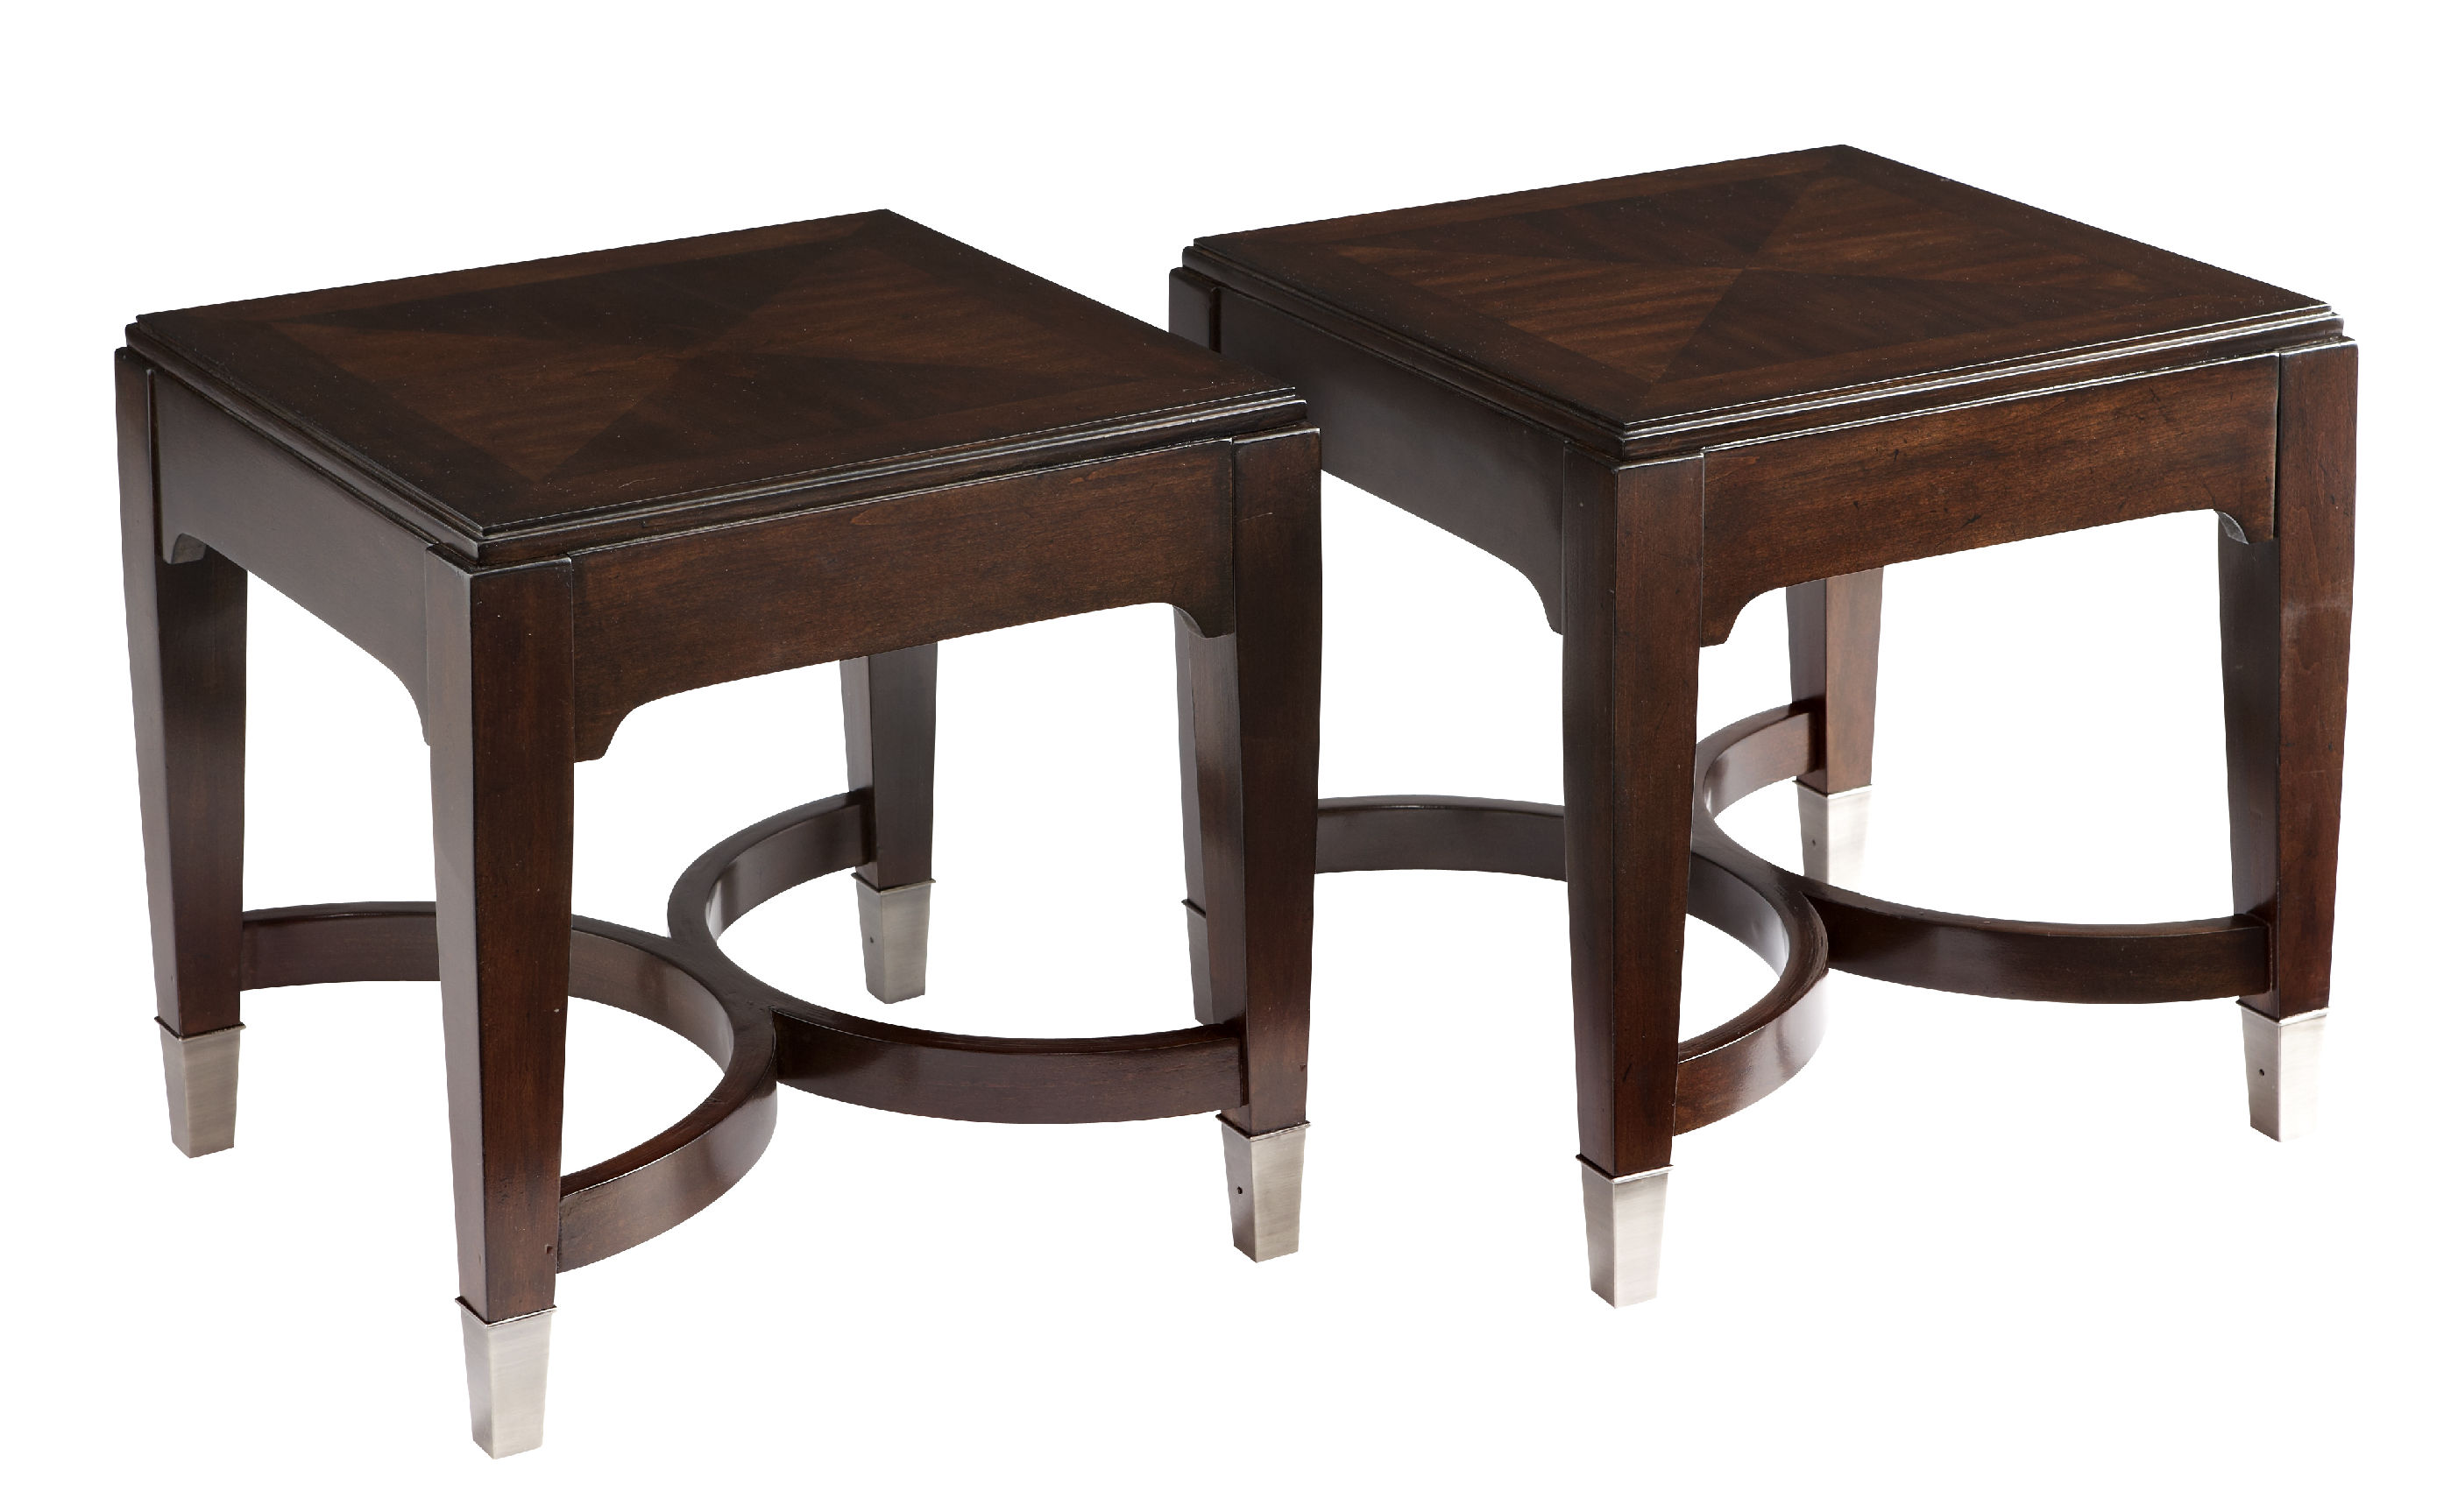 Alluring bunching tables with wooden Source and rug also soft sofas and with living room set furnitures